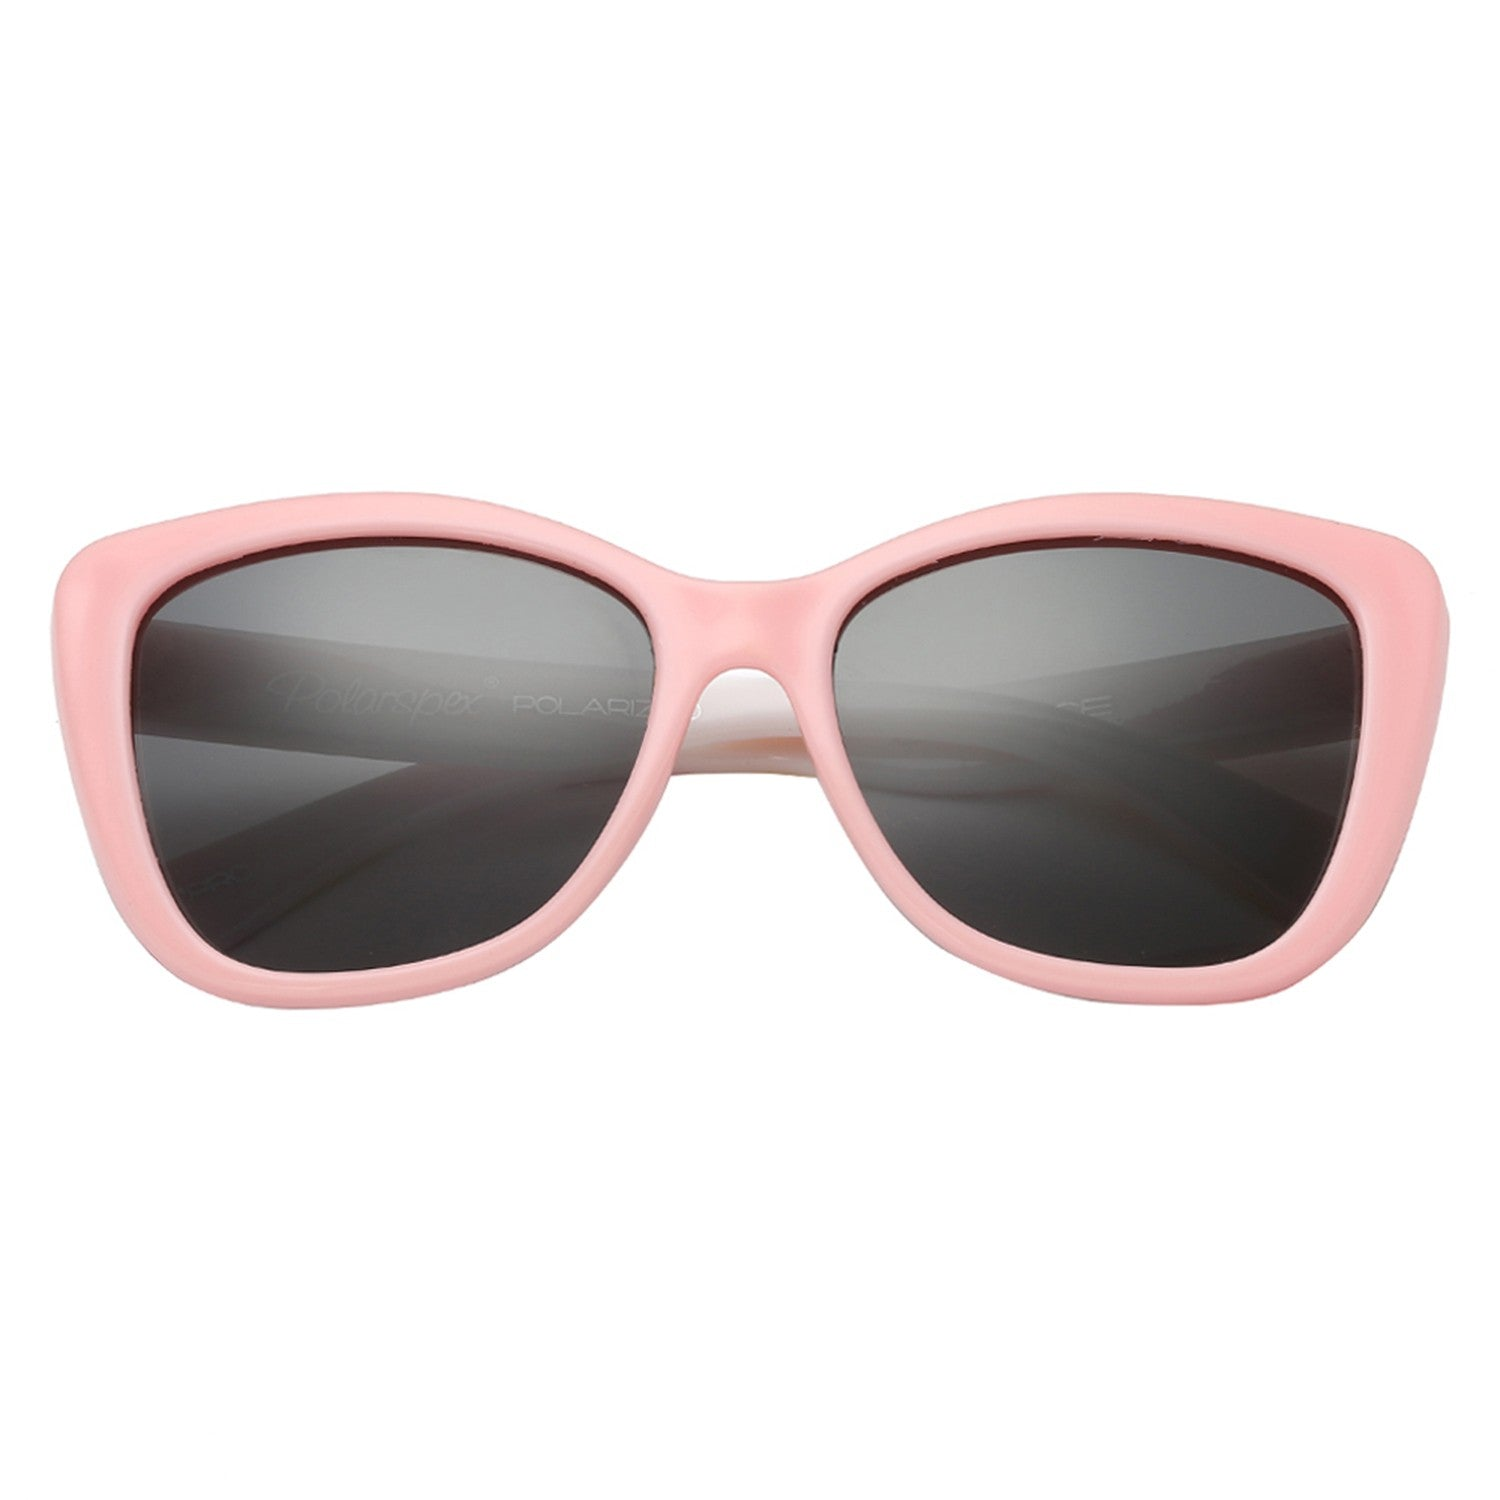 Polarspex Polarized Elastic Cateyes Style (BPA Free) Kids Sunglasses with Princess Pink + Floral Frames and Polarized Smoke Lenses for Girls (Ages 3 - 10)